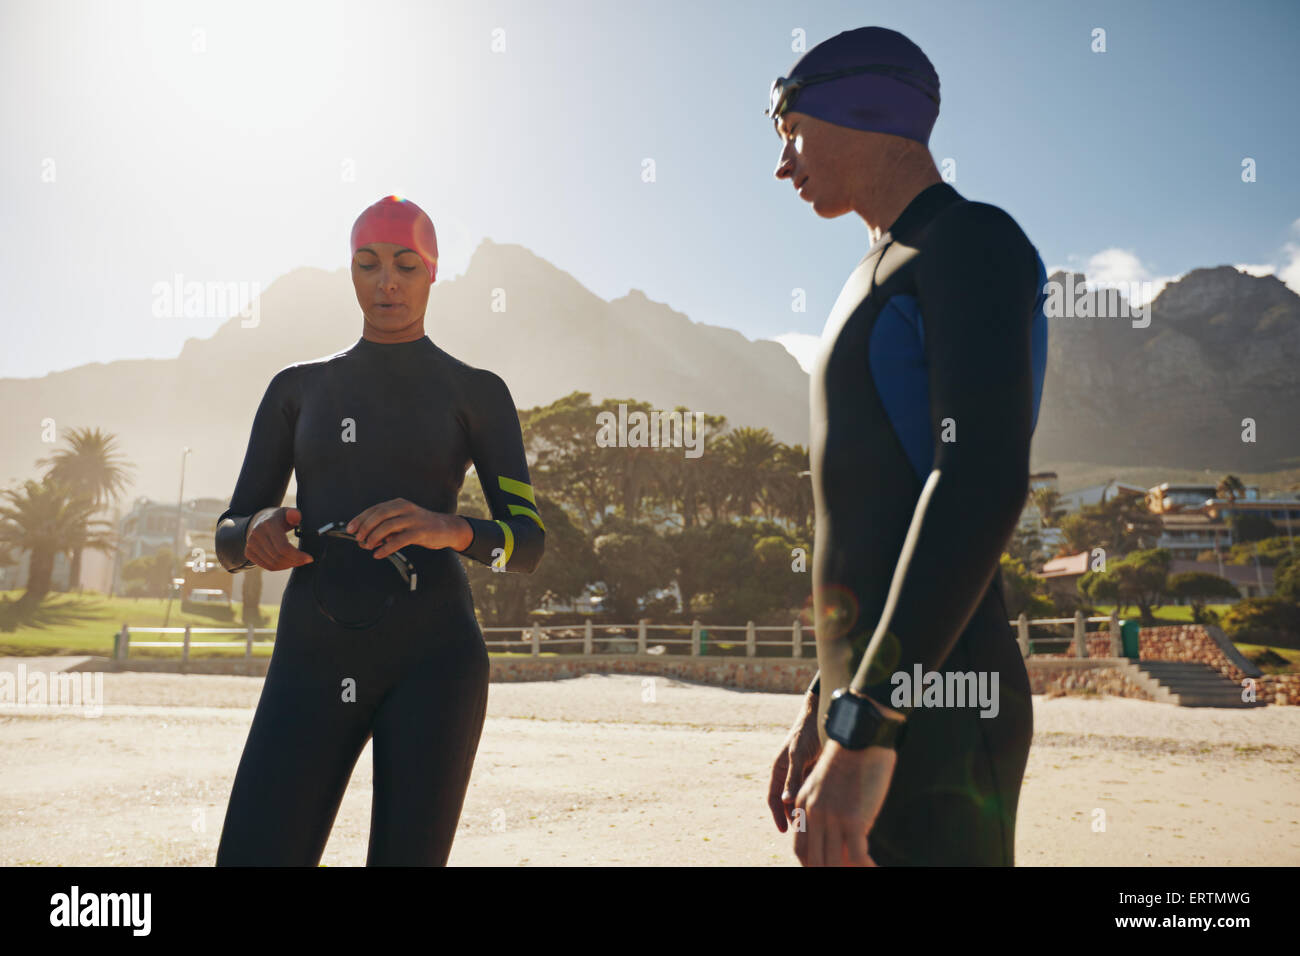 Shot of young man and woman with their swimming gear on standing on the beach. Triathletes preparing for the race. - Stock Image